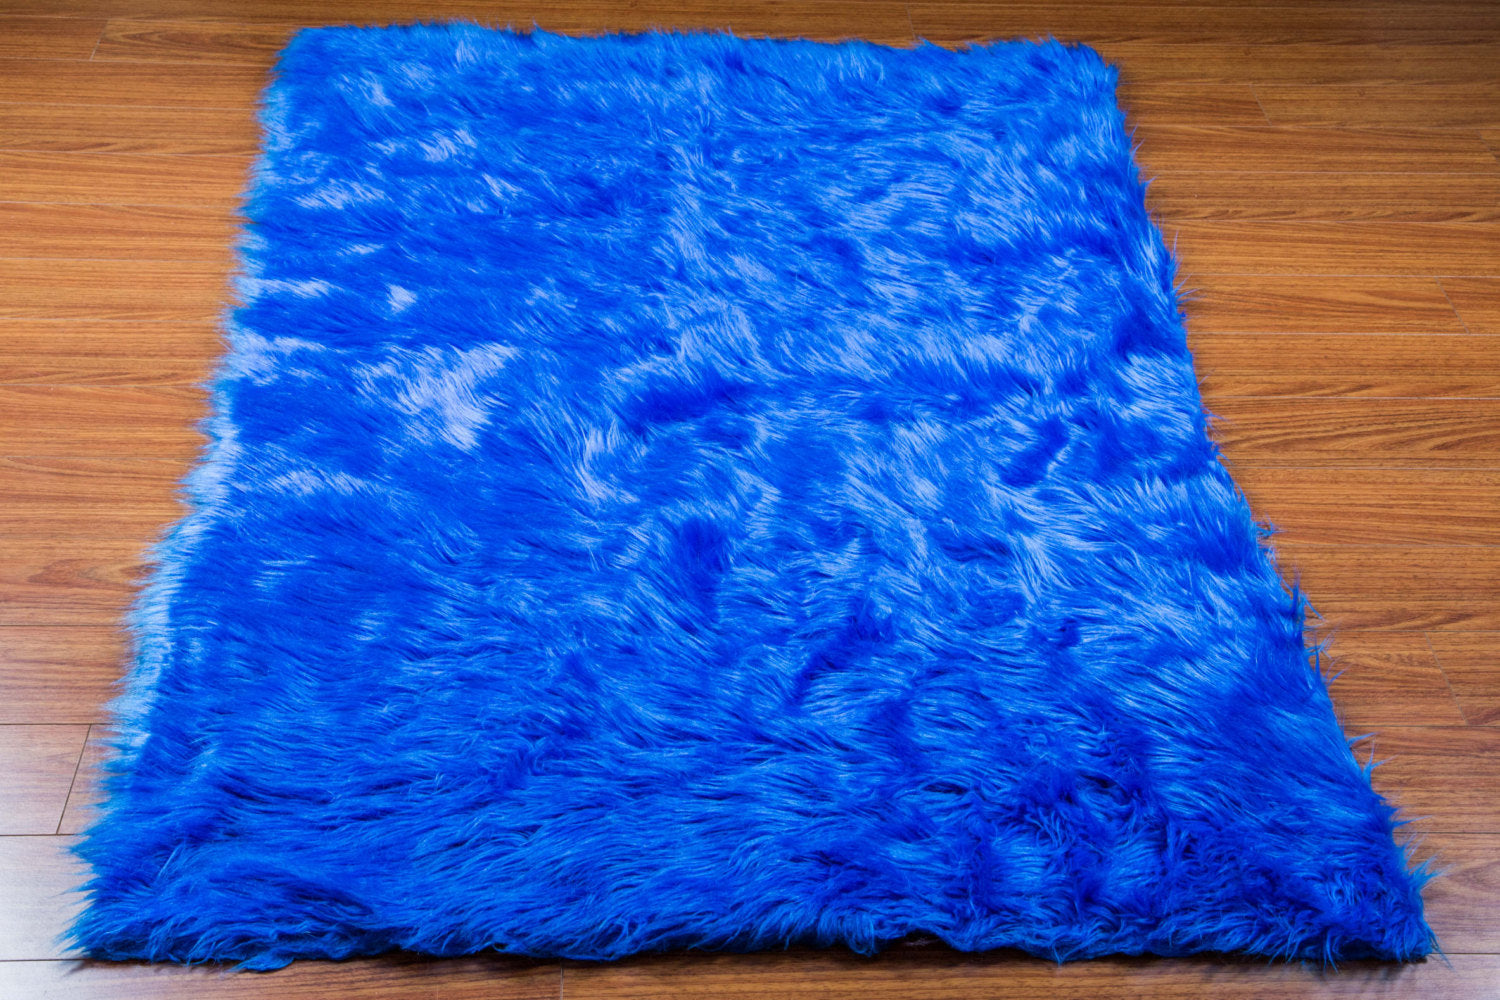 Ocean Blue Shaggy Plush Faux Fur Rectangular 5'x8' Area Rug || Home Decor